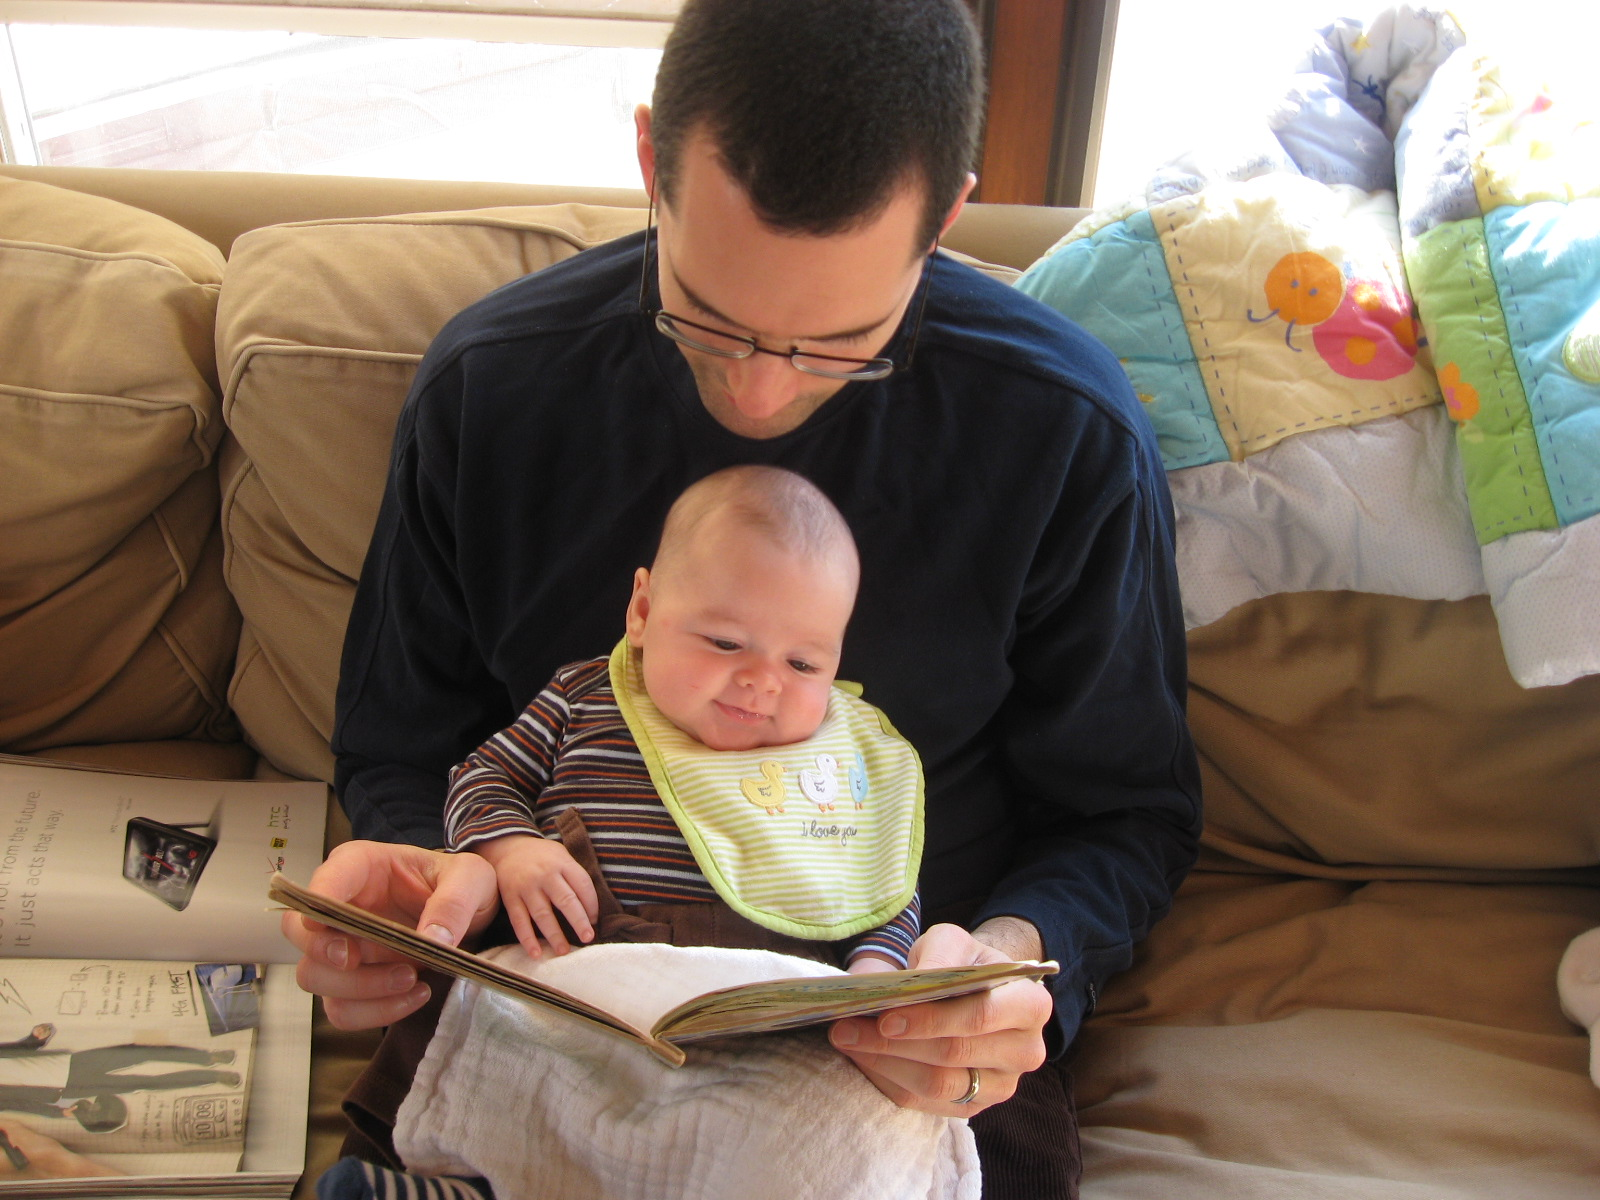 Reading improves the vocabulary and analytical skills.